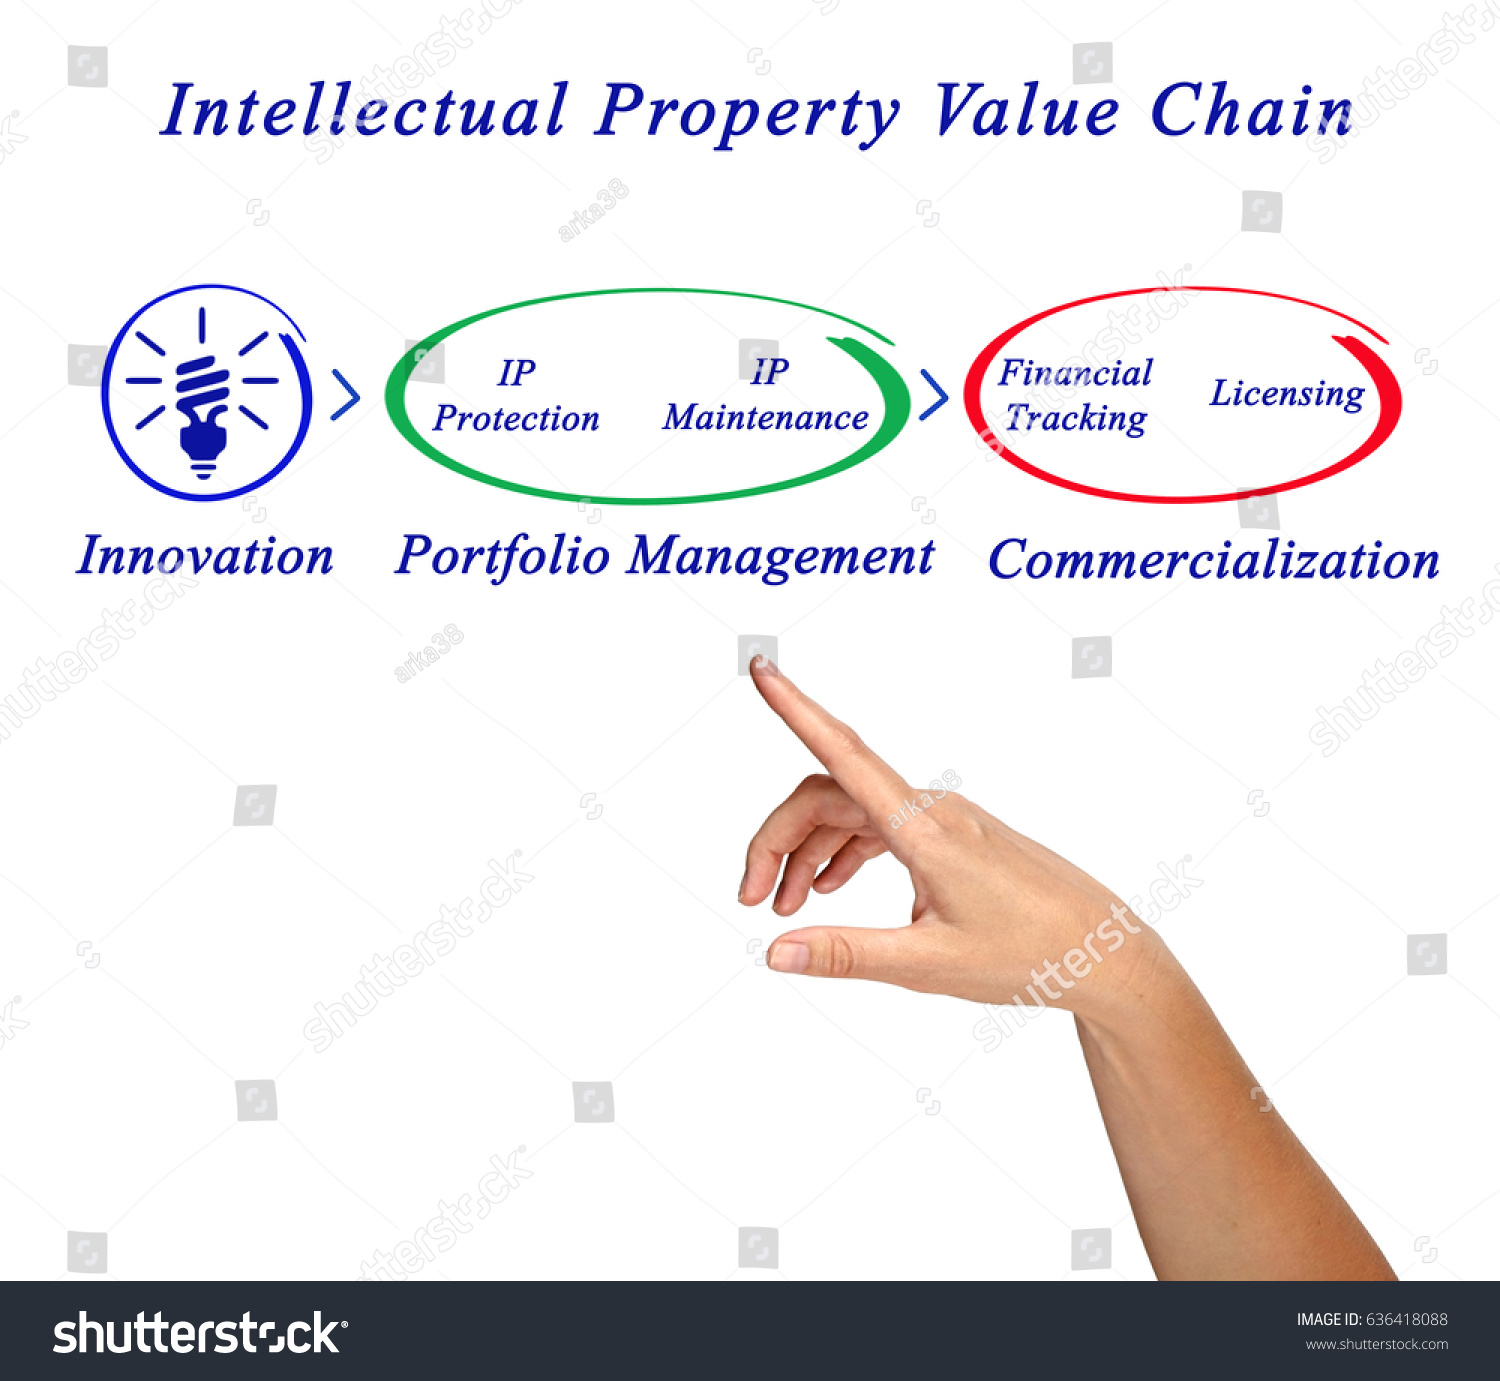 Intellectual Property Protection: Intellectual Property Value Chain Stock Photo 636418088